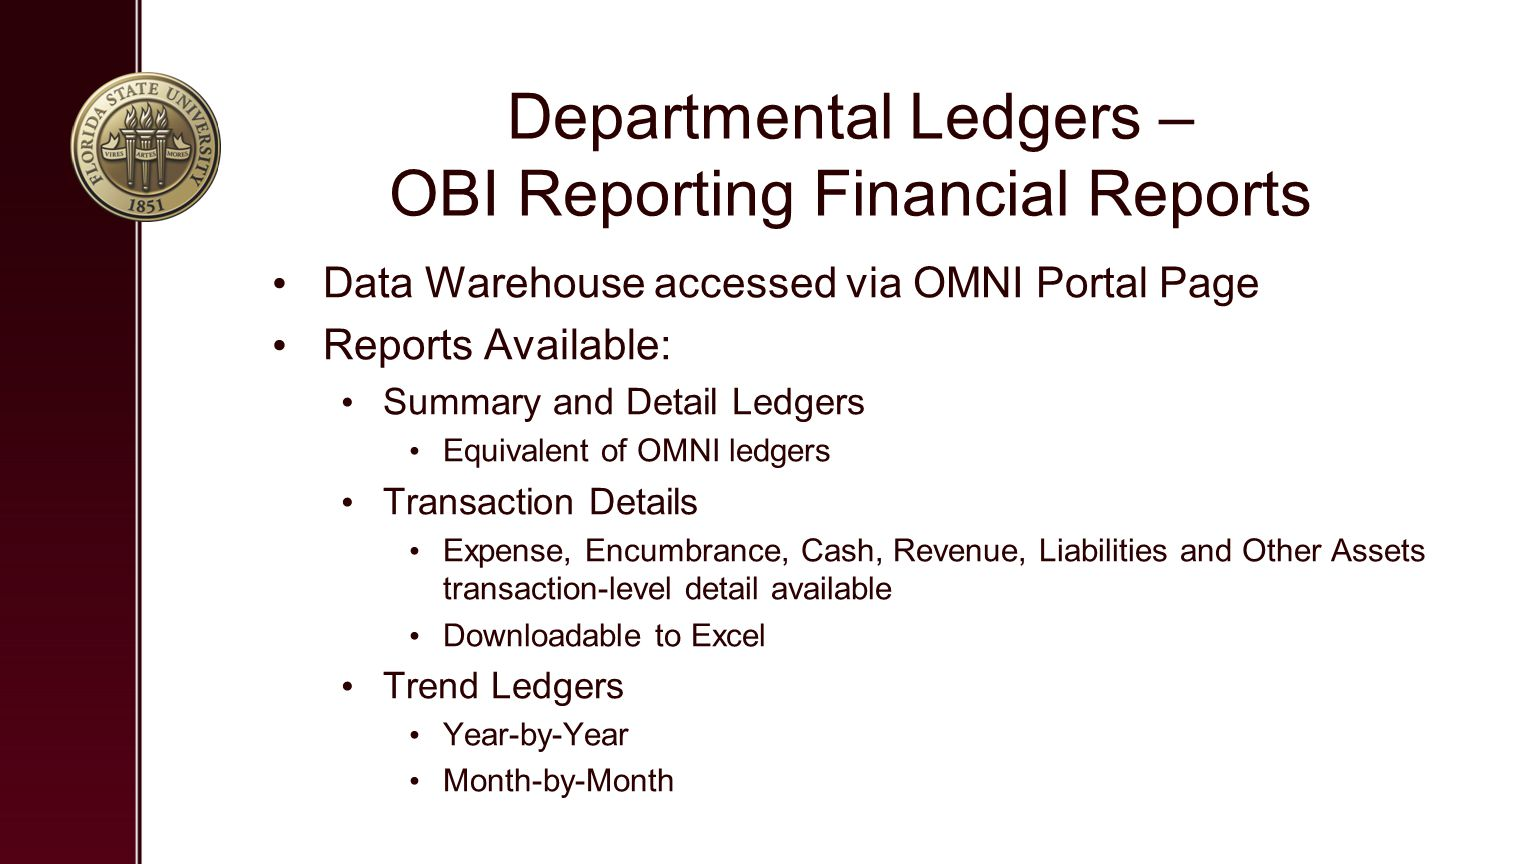 Departmental Ledgers – OBI Reporting Financial Reports Data Warehouse accessed via OMNI Portal Page Reports Available: Summary and Detail Ledgers Equivalent of OMNI ledgers Transaction Details Expense, Encumbrance, Cash, Revenue, Liabilities and Other Assets transaction-level detail available Downloadable to Excel Trend Ledgers Year-by-Year Month-by-Month